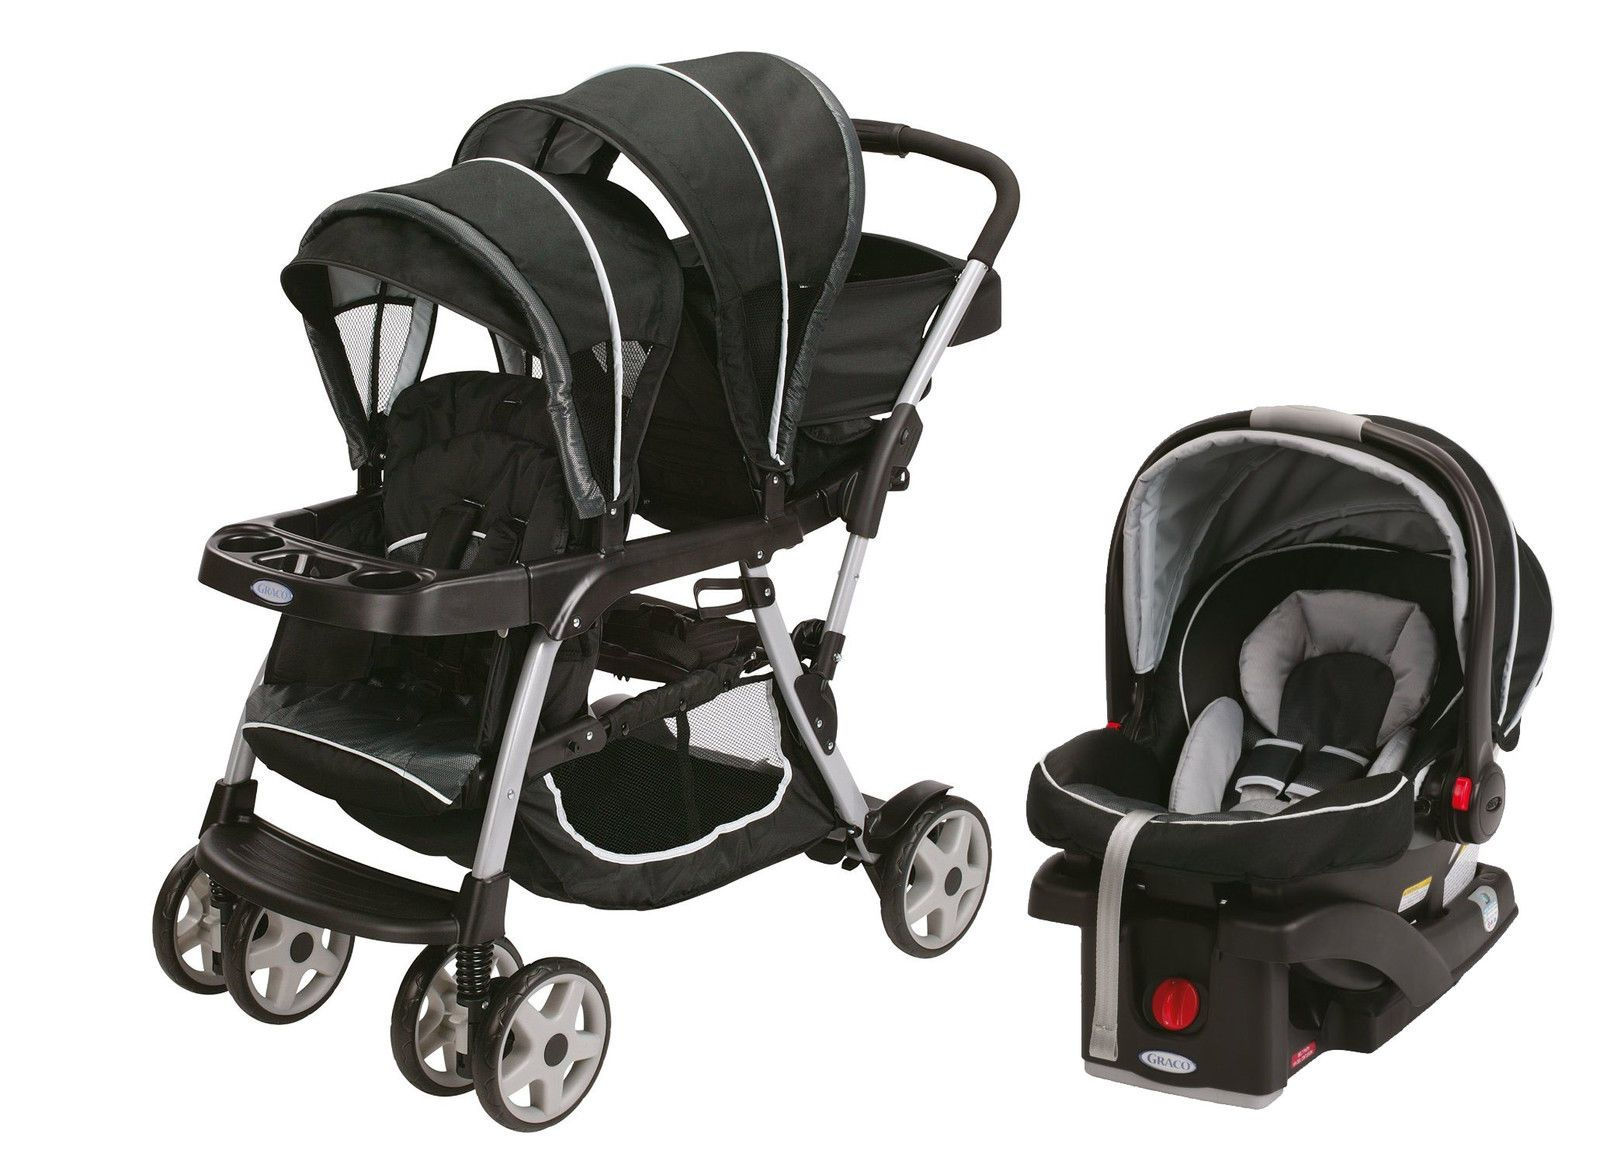 Graco Ready2Grow Lx Duo Double Baby Stroller + Car Seat